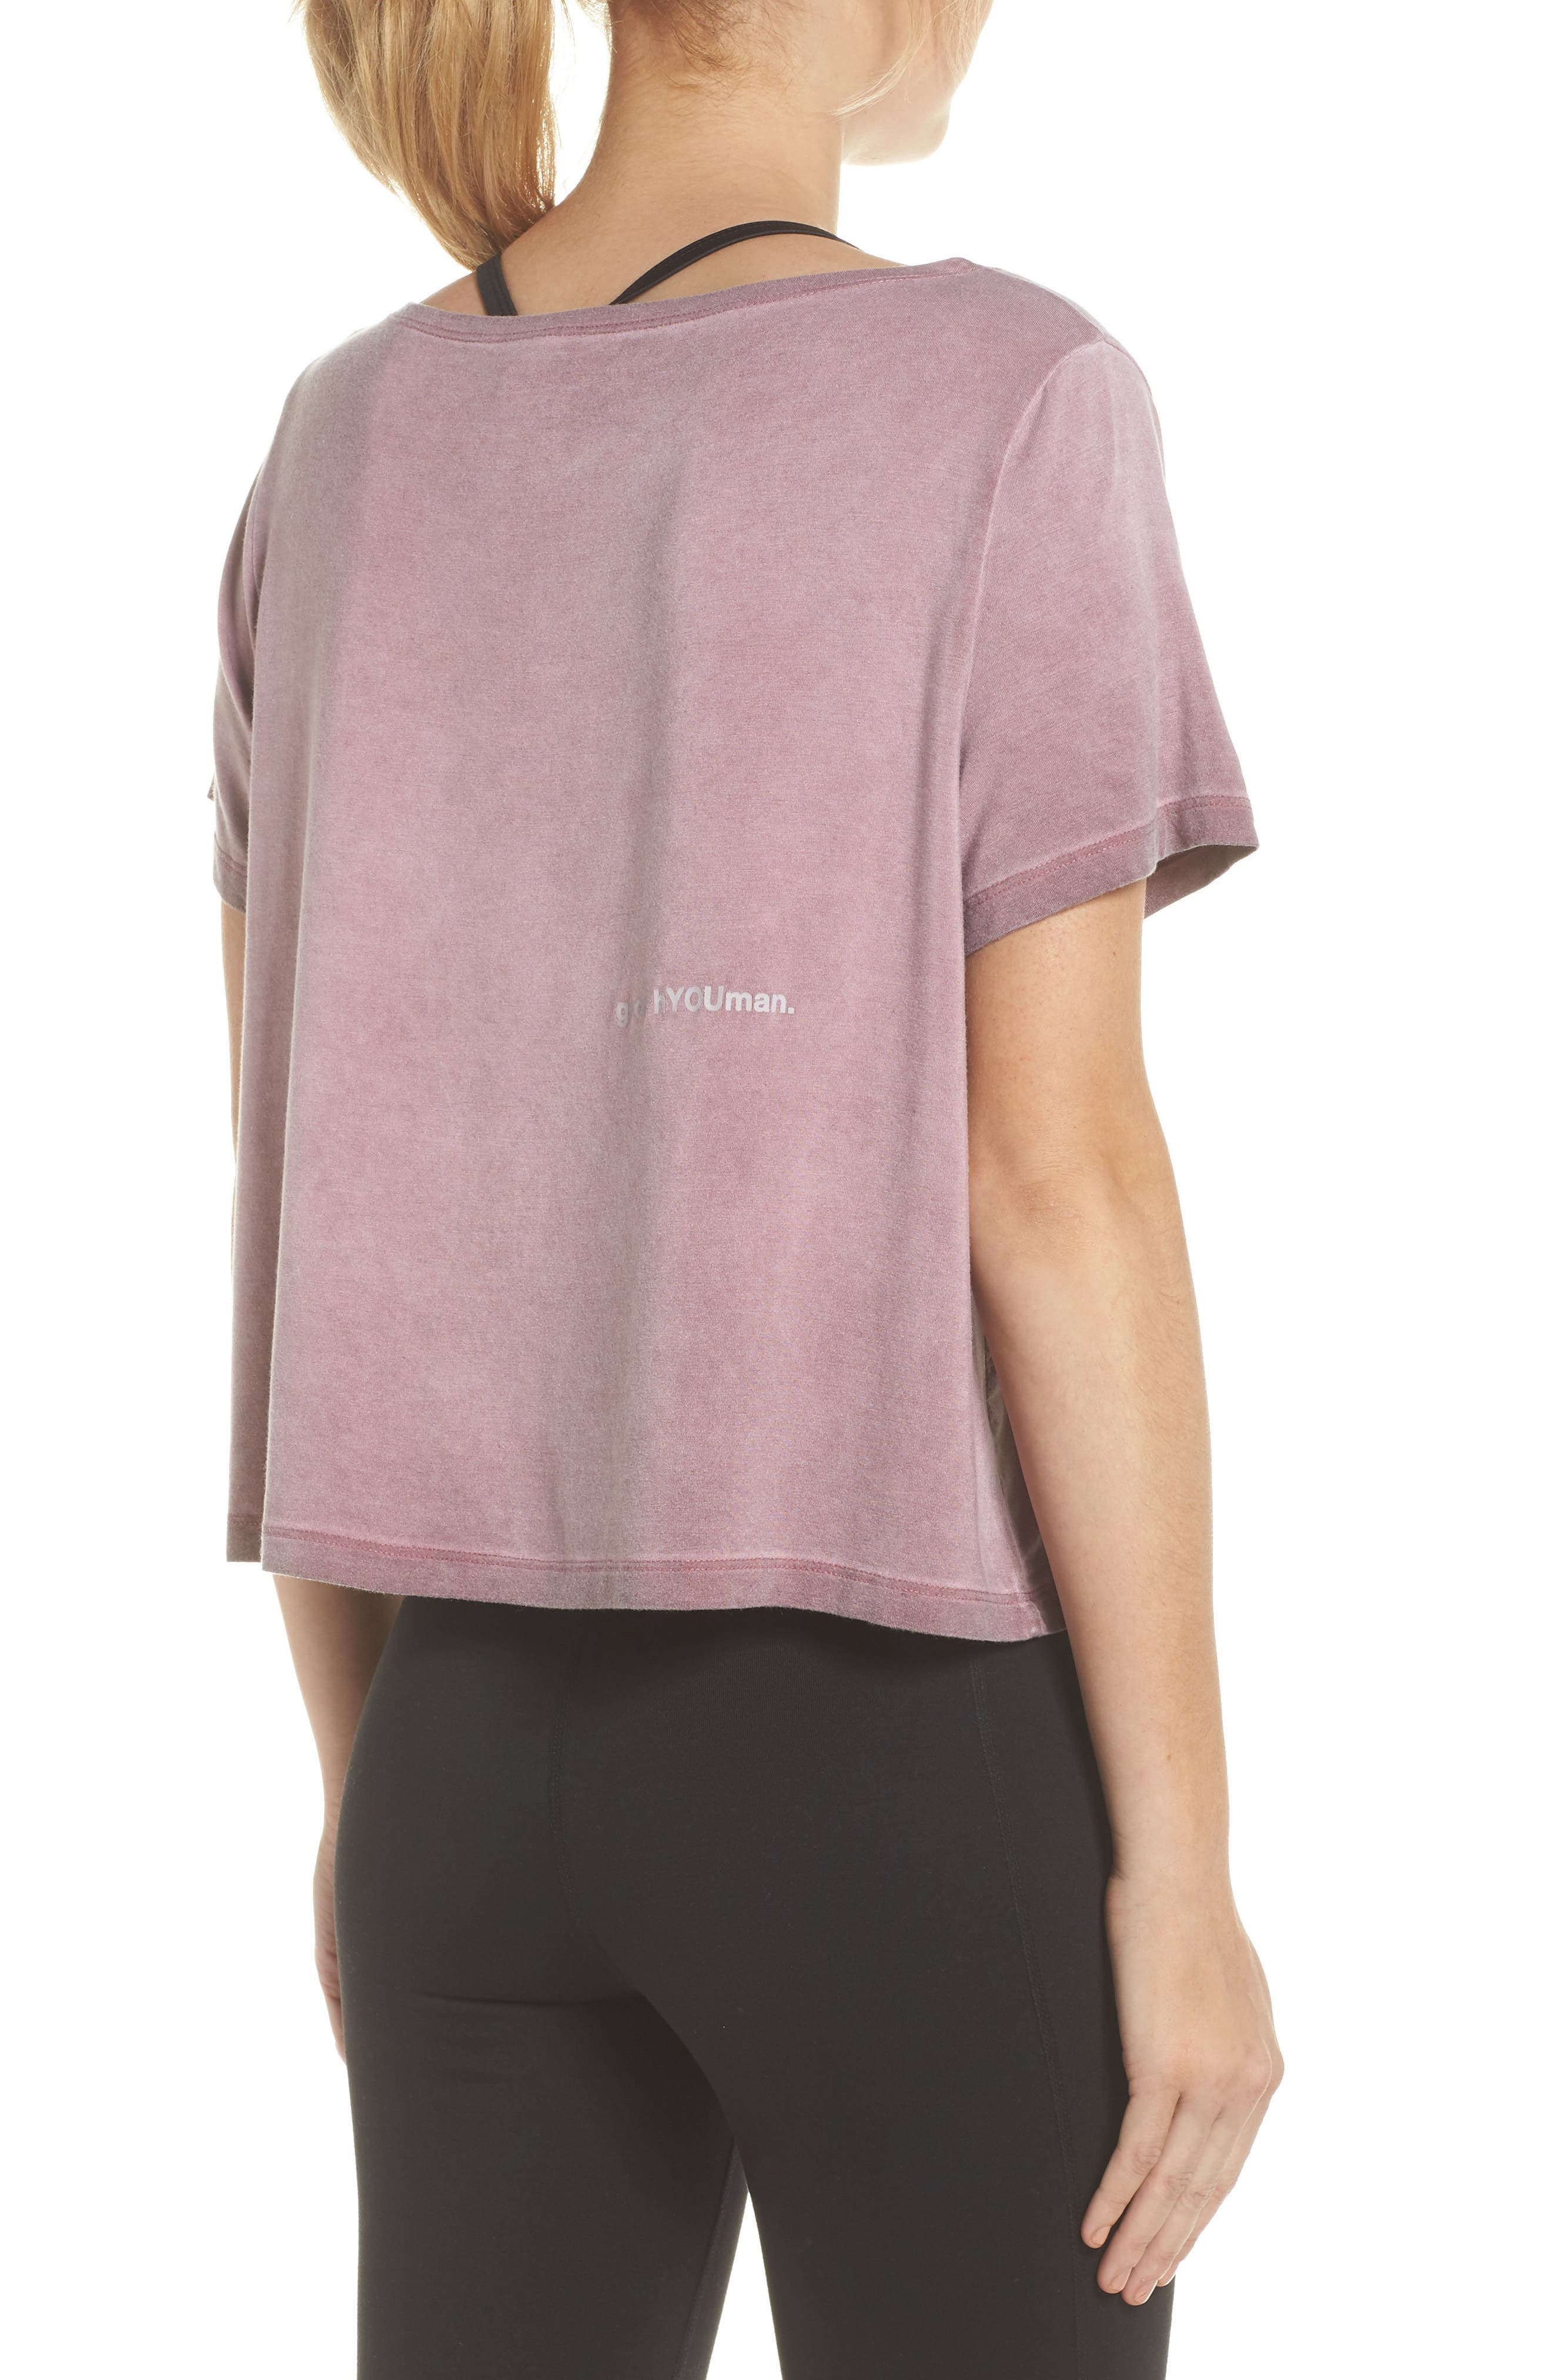 Payton Love Yourself Crop Tee,                             Alternate thumbnail 2, color,                             650